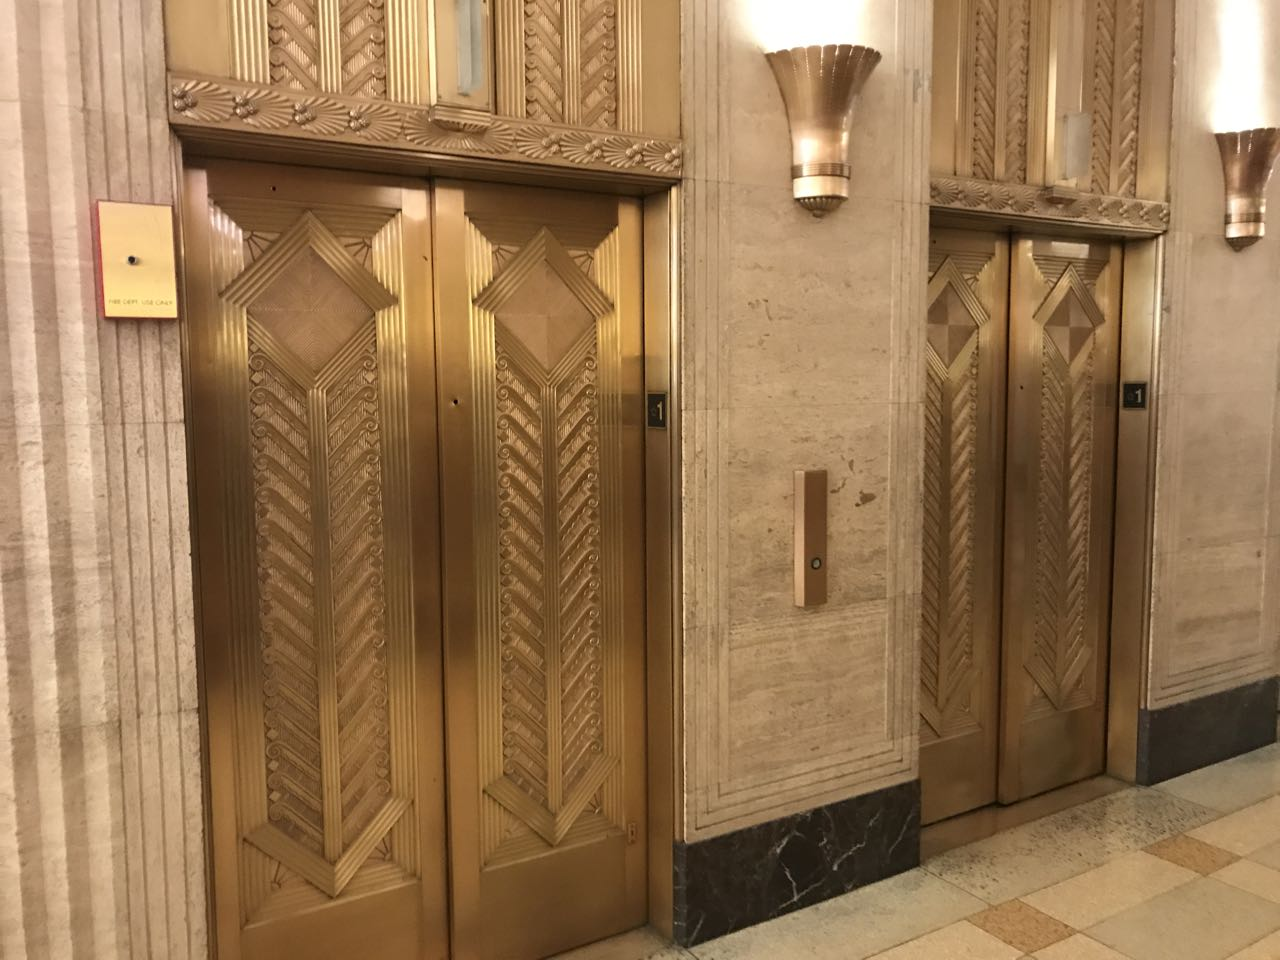 The elevators at Merchandise Mart from the outside.